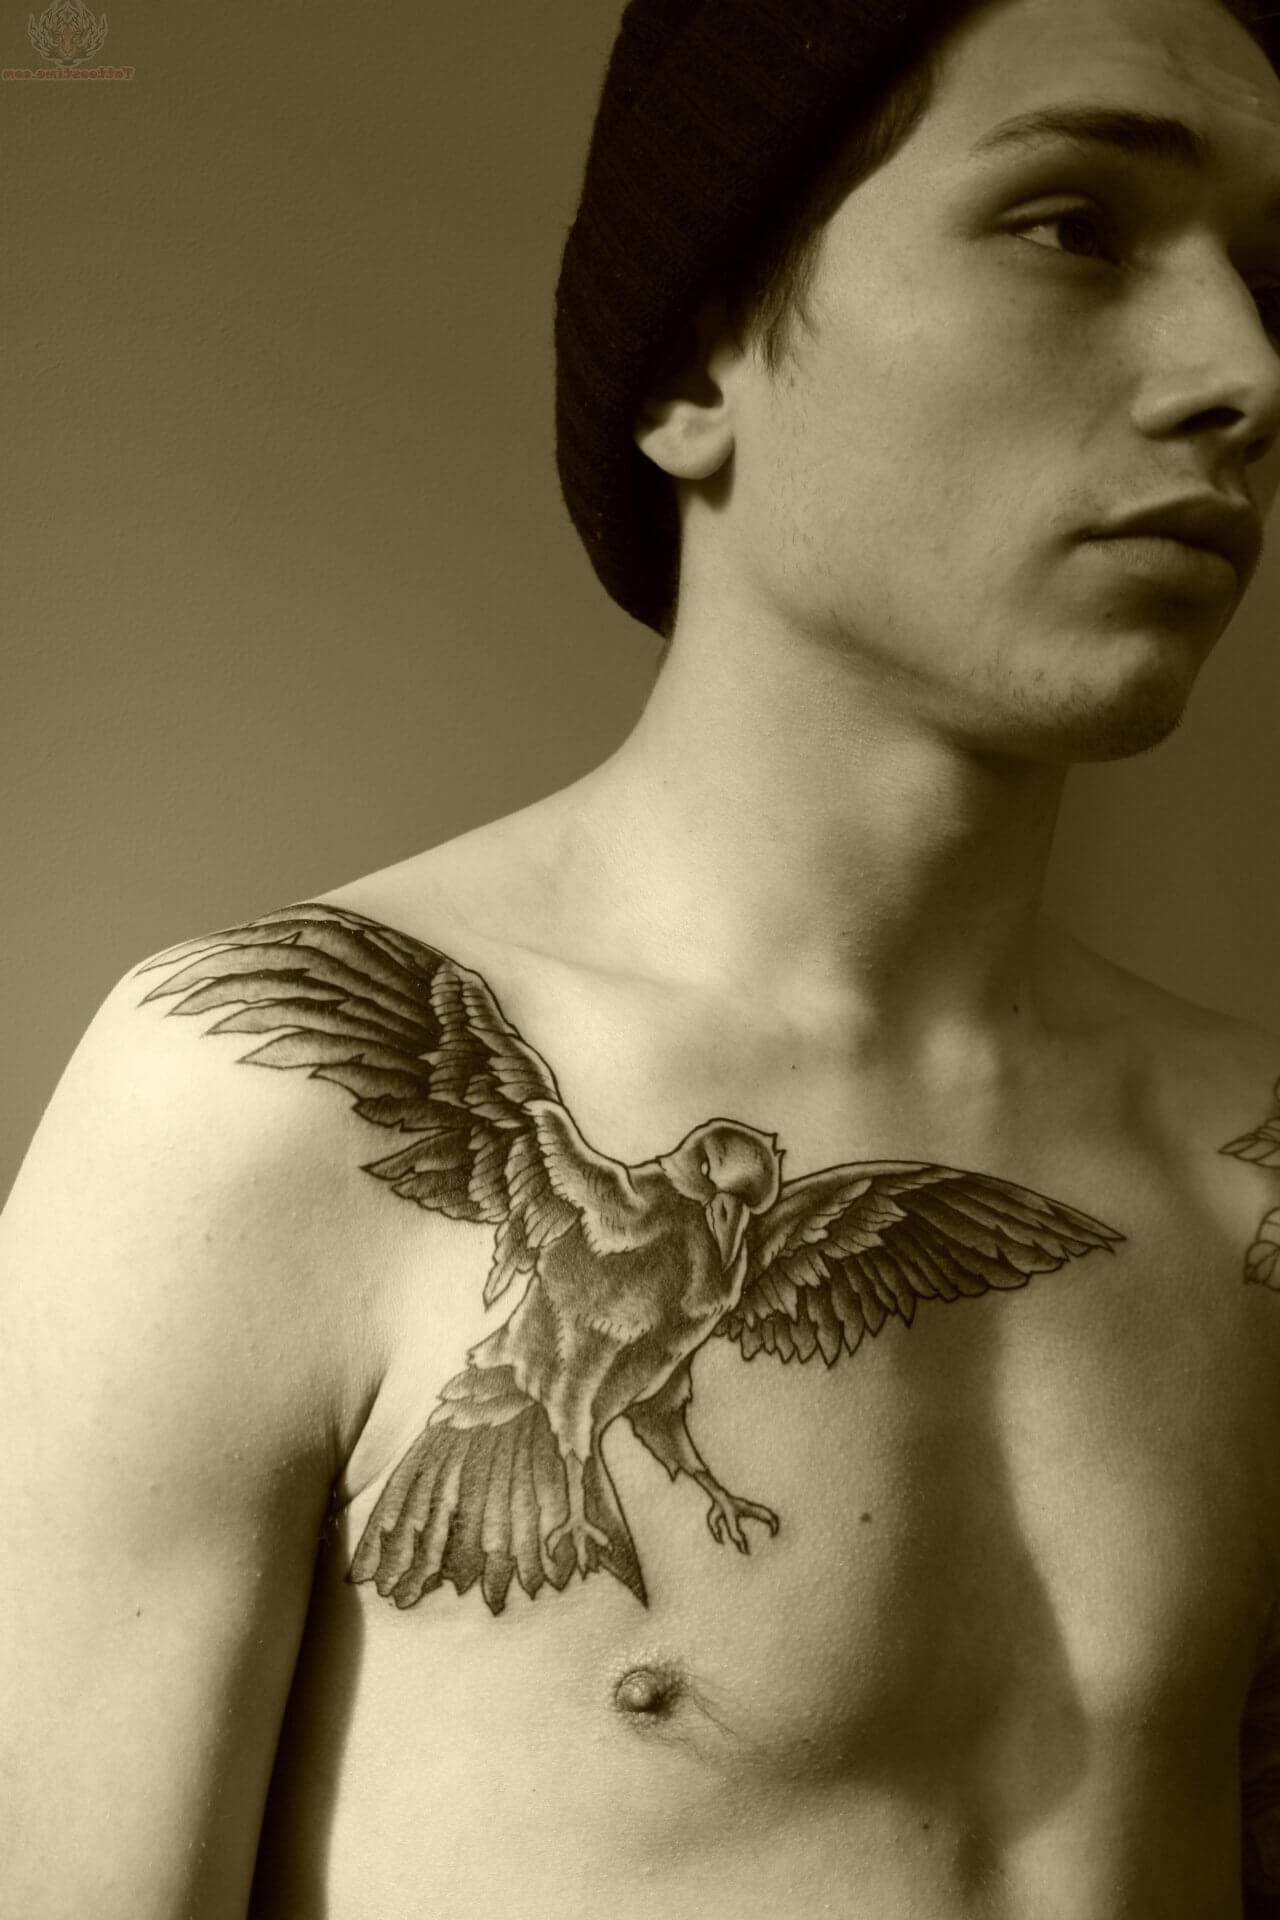 The 100 Best Chest Tattoos For Men Improb with measurements 1280 X 1920